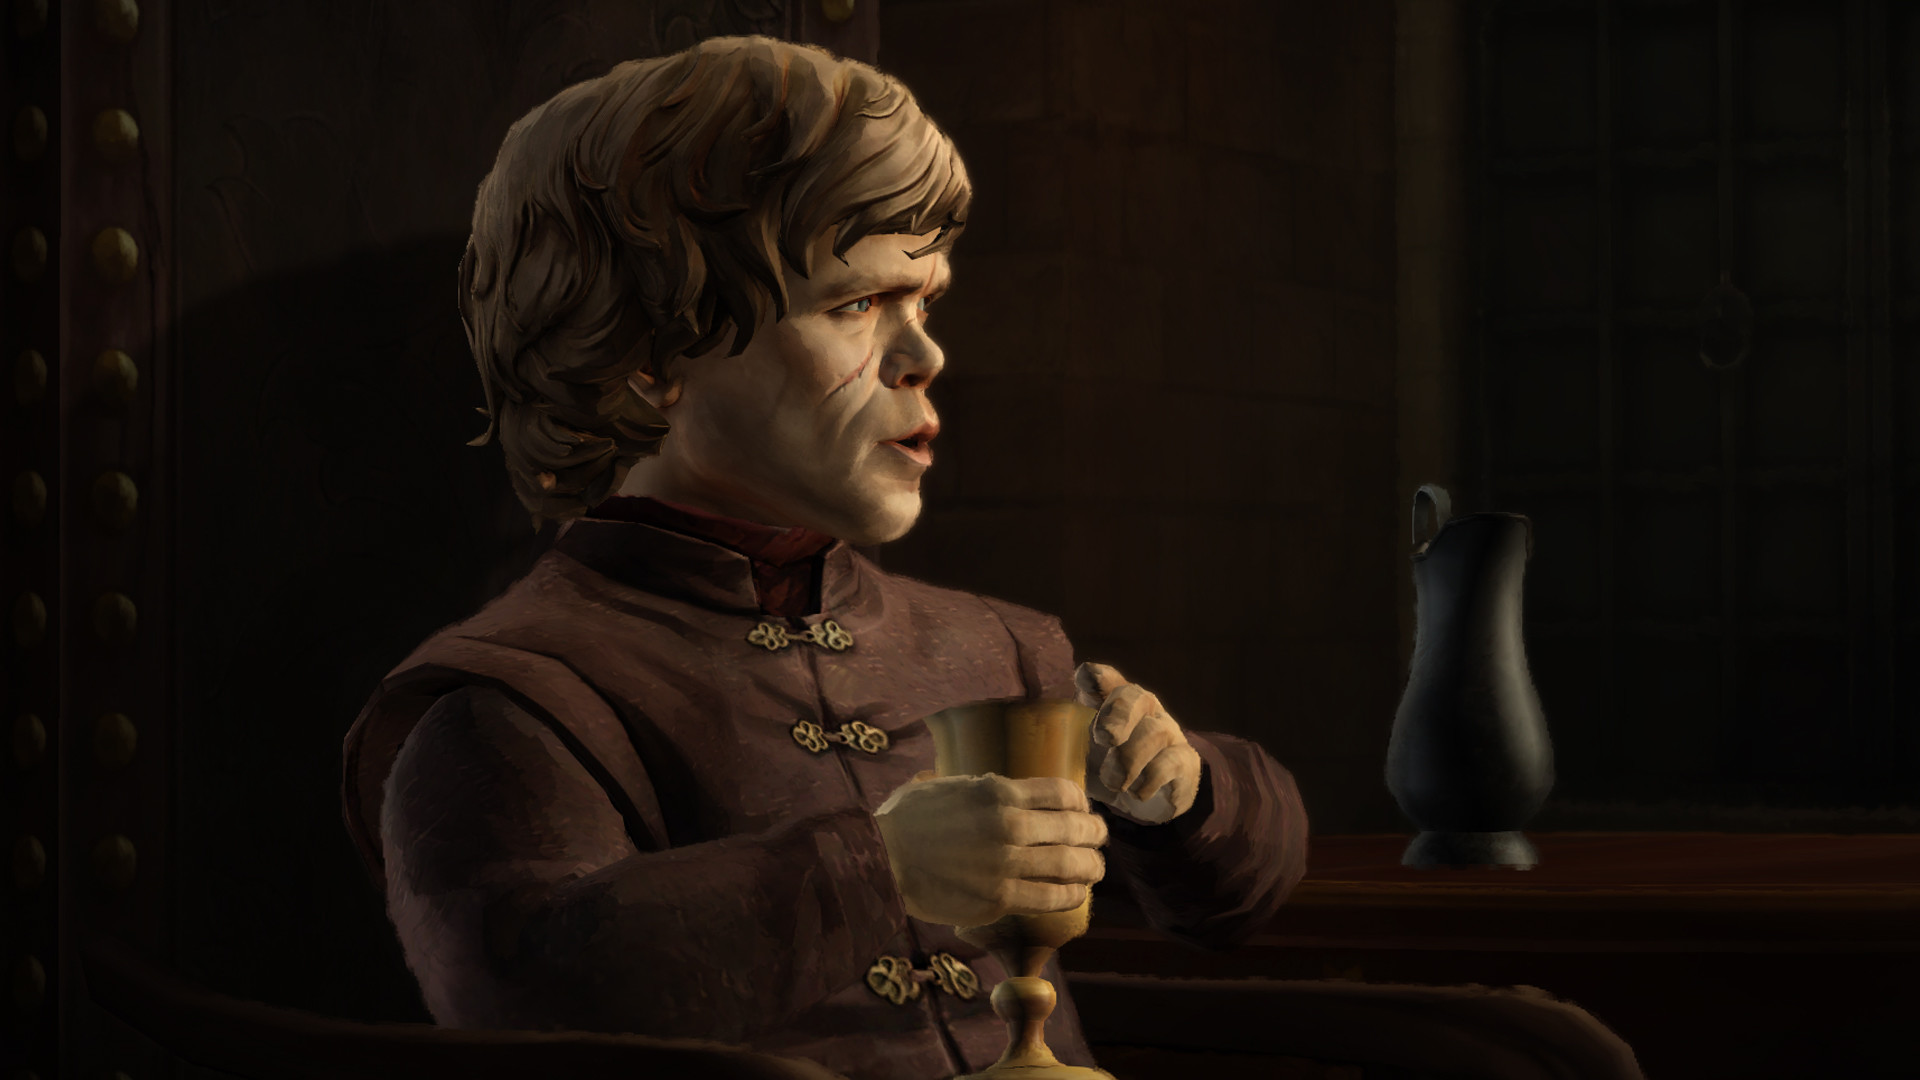 Game of Thrones: Episodes 1-4 - Sons of Winter (Telltale Games) (ENG) [L] - Скриншот 3